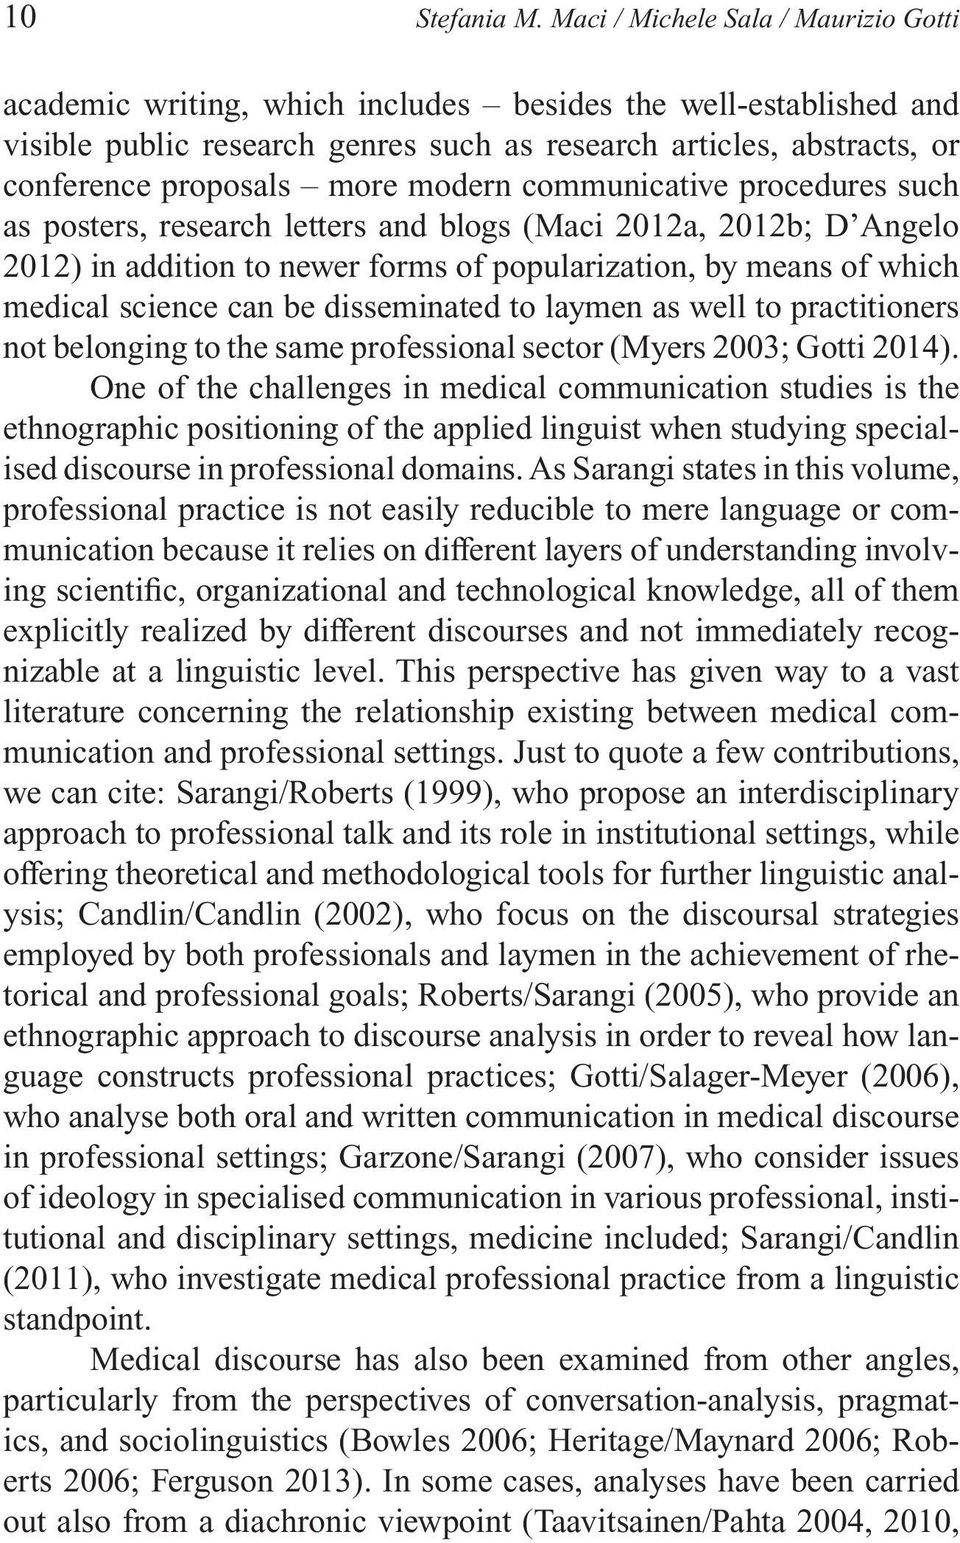 more modern communicative procedures such as posters, research letters and blogs (Maci 2012a, 2012b; D Angelo 2012) in addition to newer forms of popularization, by means of which medical science can